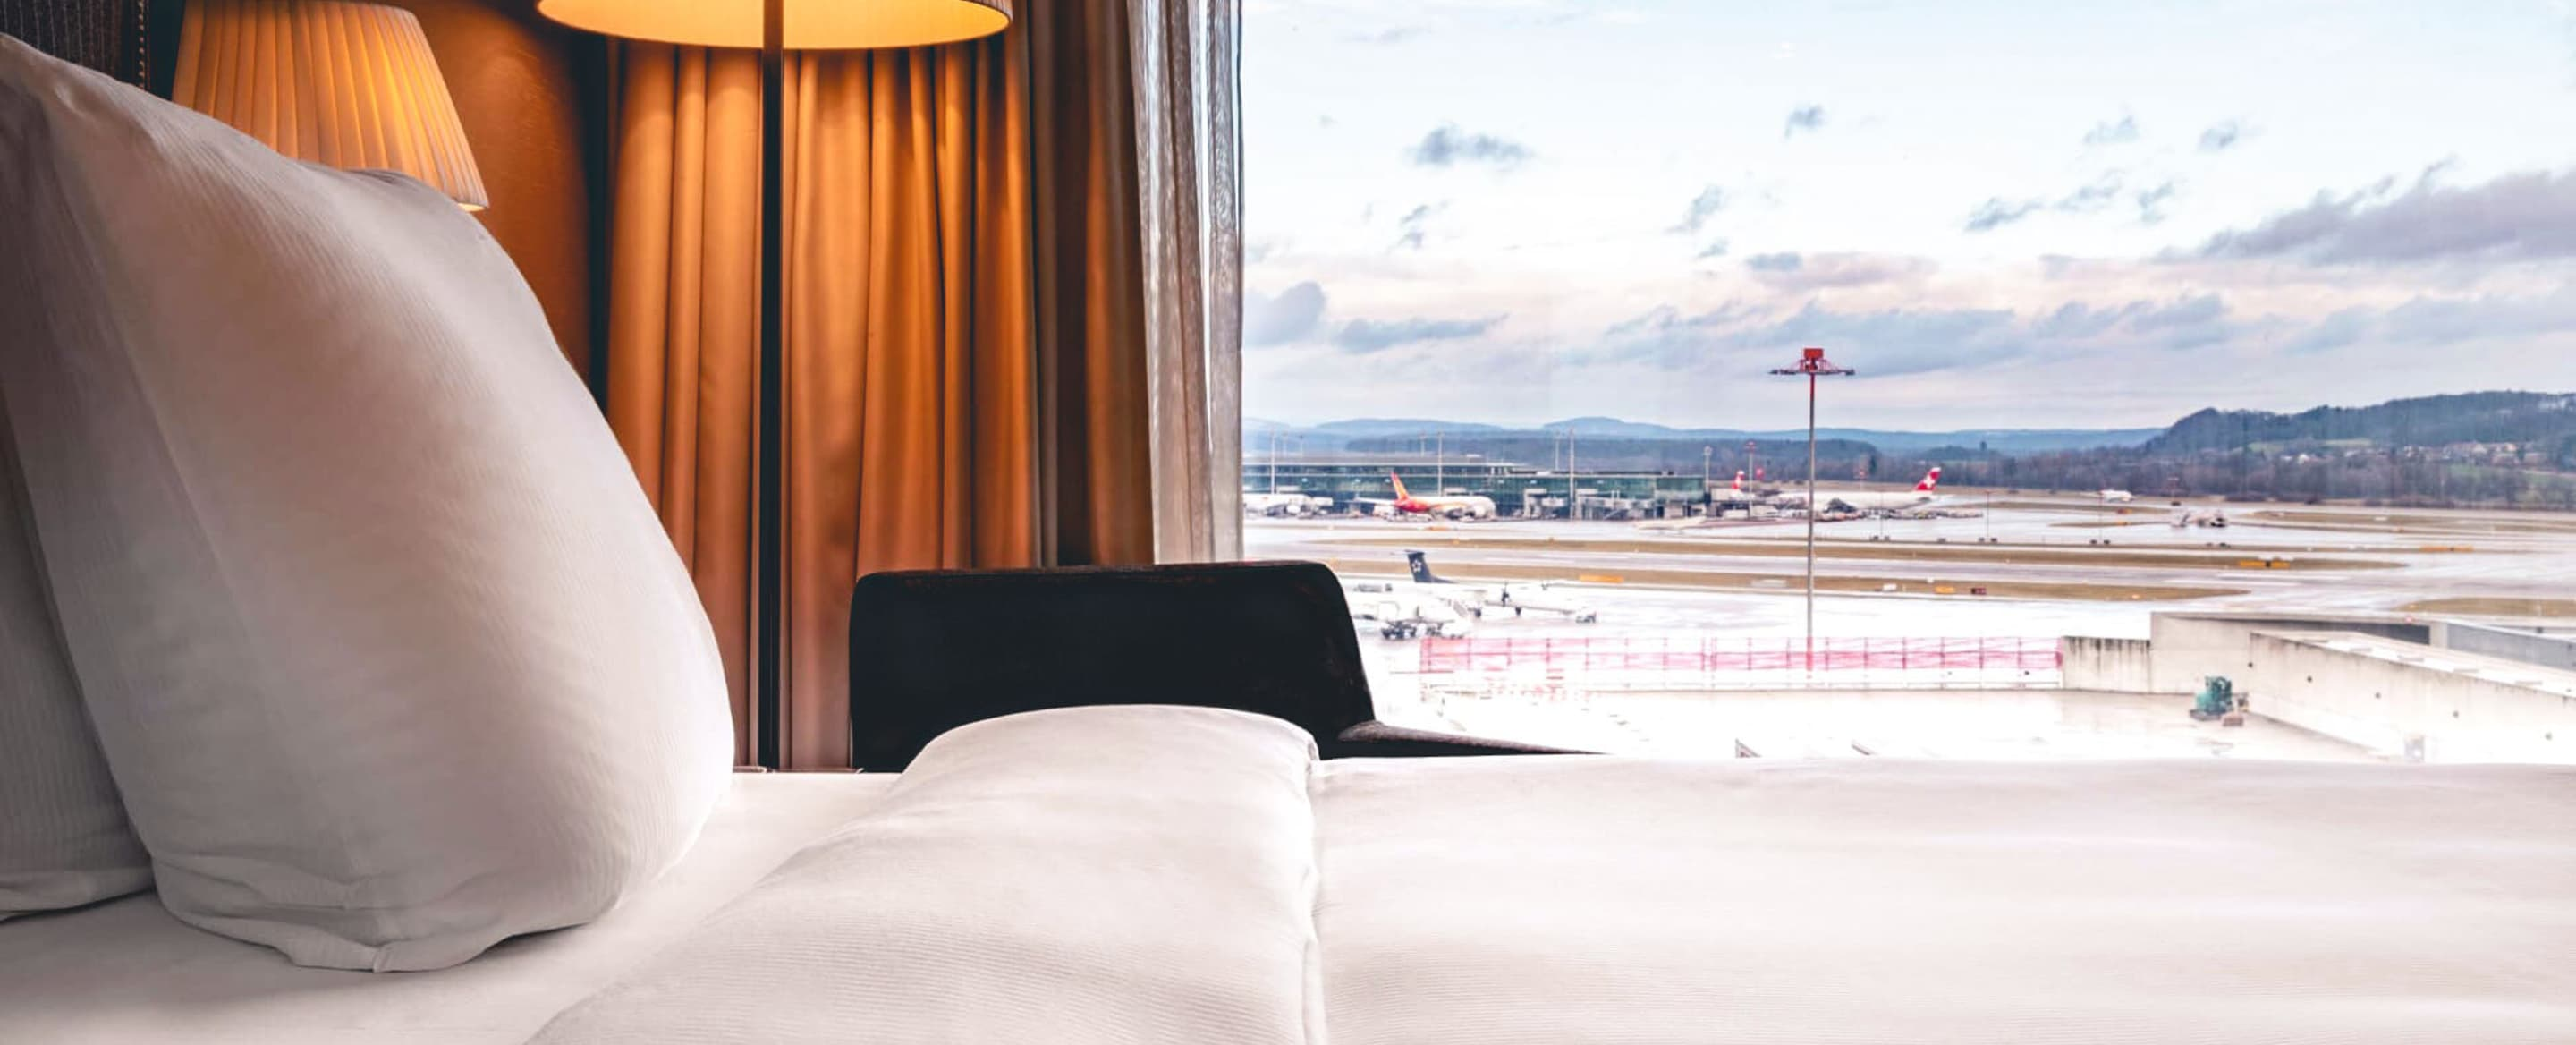 Modern upselling at airport hotels